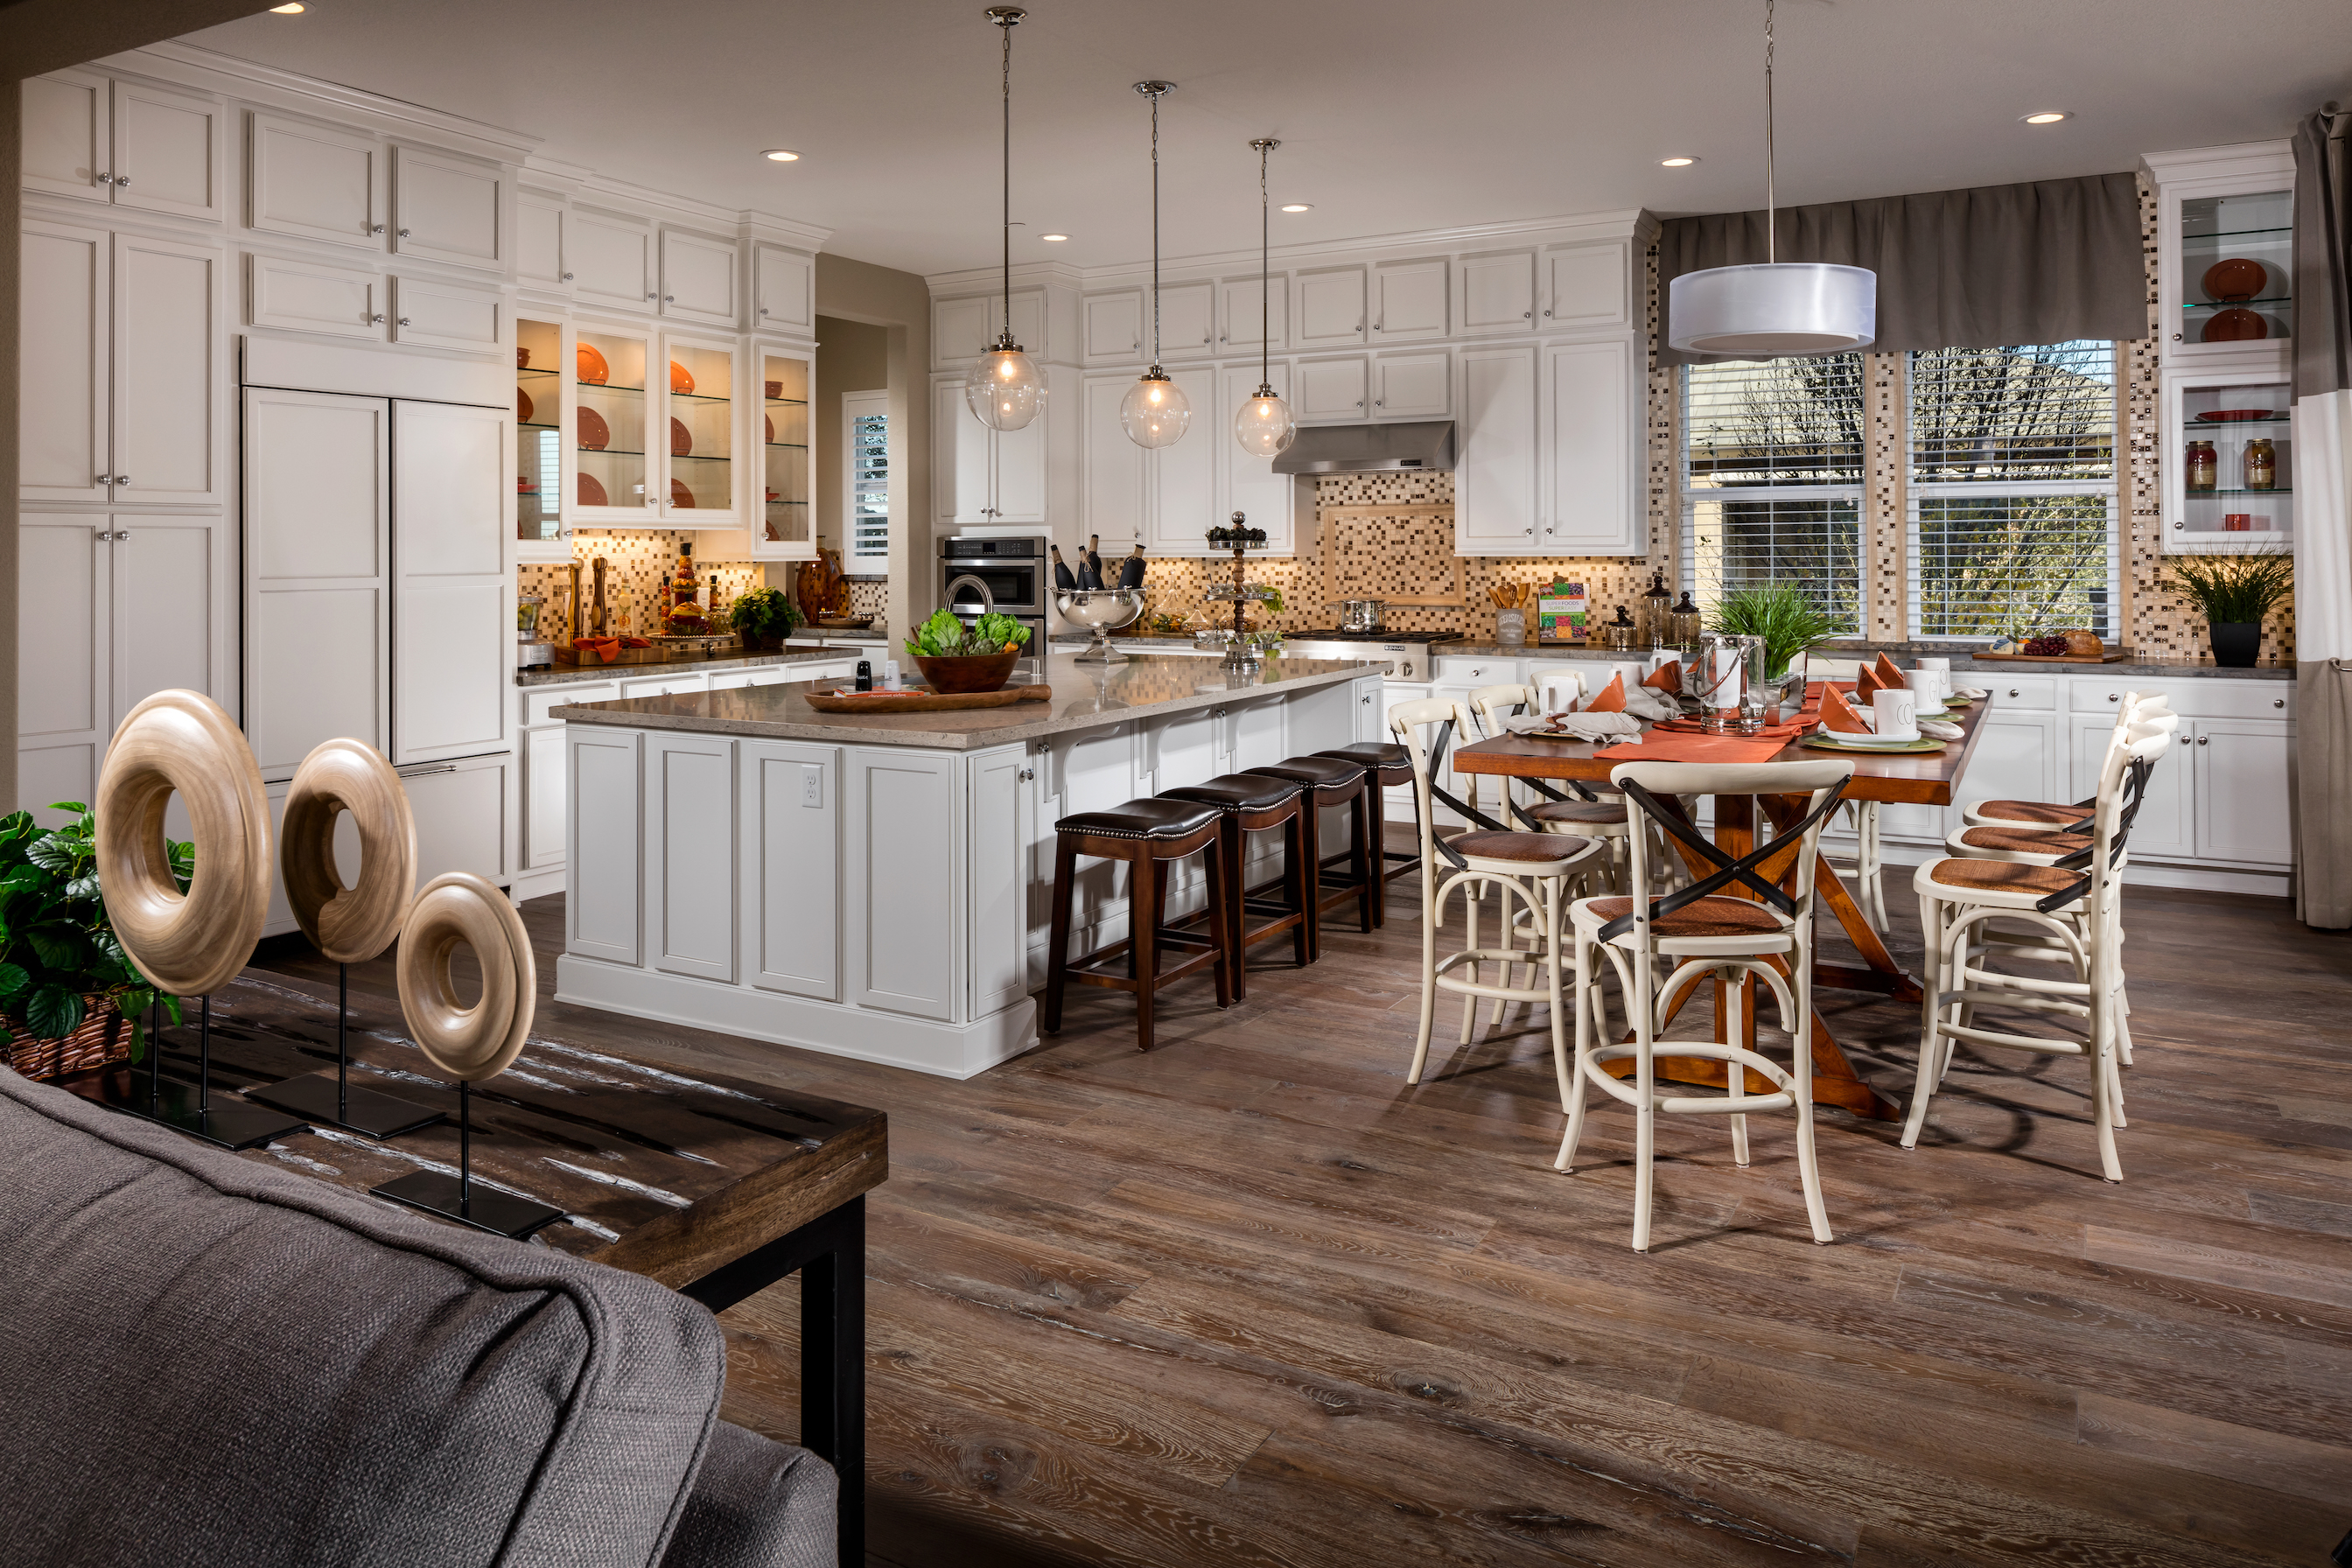 Kitchen with wood floors and white cabinets